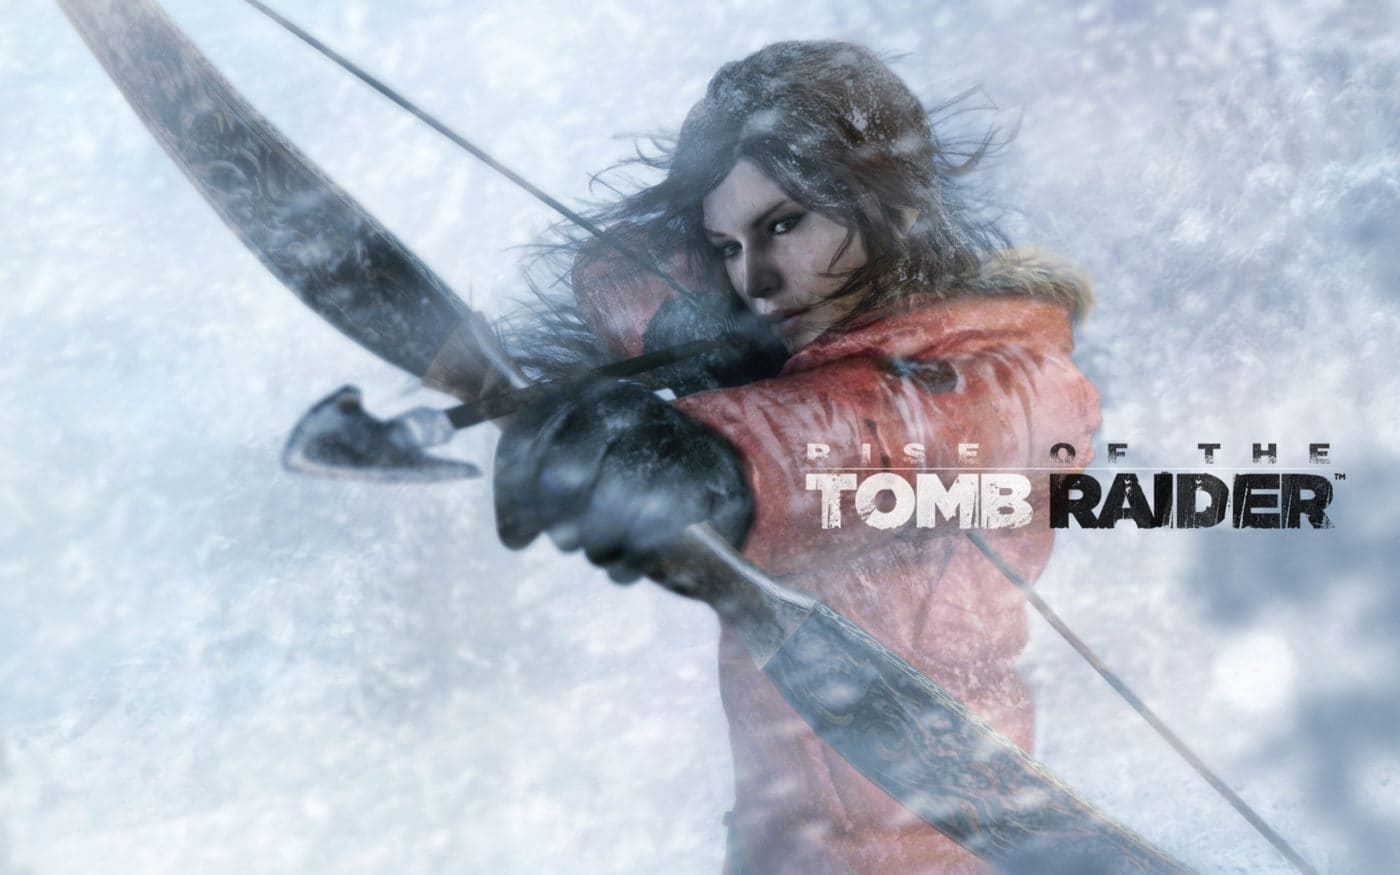 Xbox One X will Run Rise of the Tomb Raider at Full 4K with Improved Textures and Much More 1